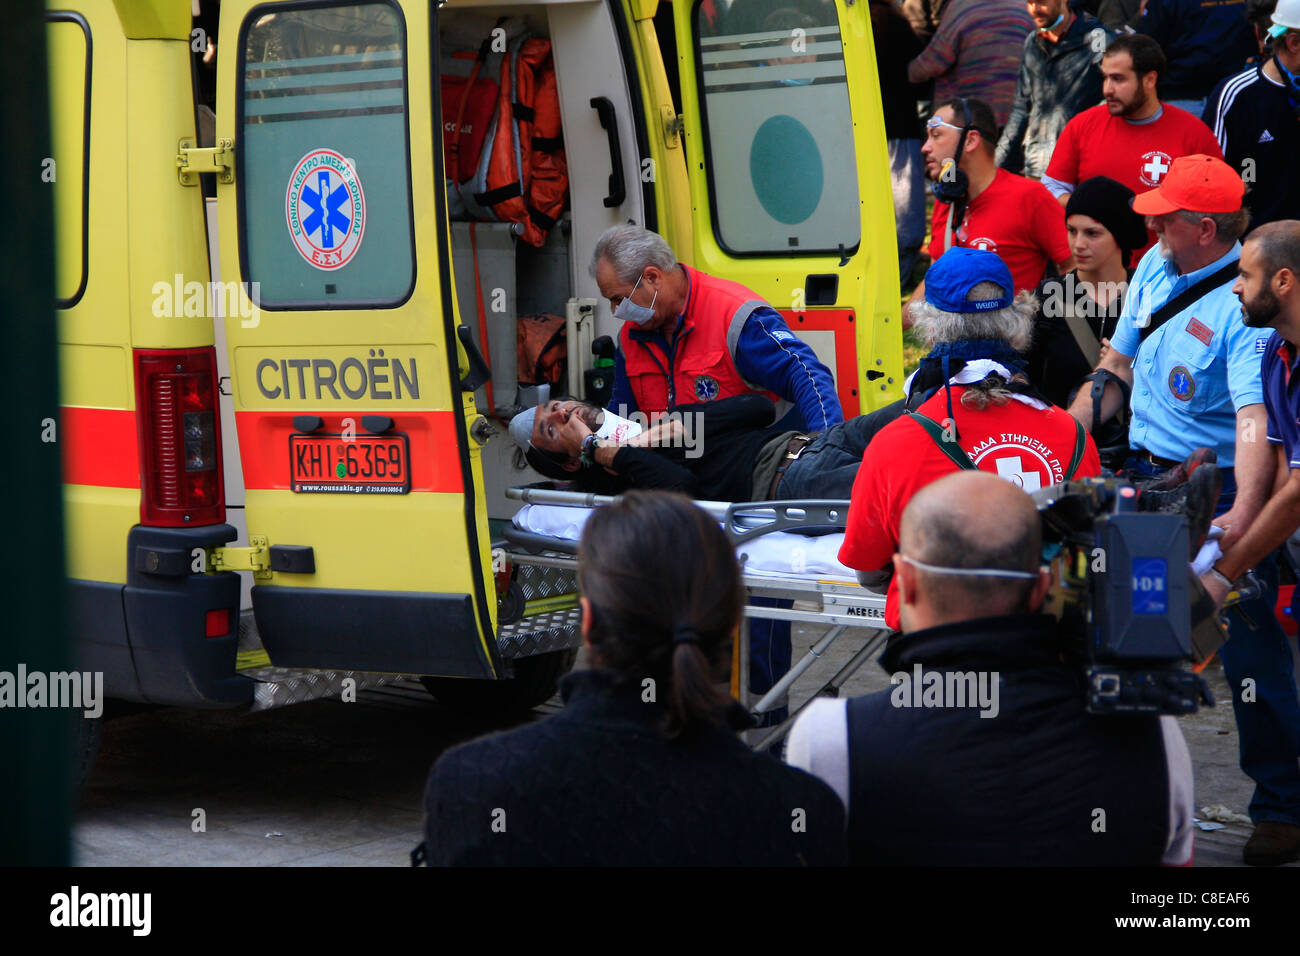 GREECE, ATHENS, SYNTAGMA SQUARE, 20/10/2011. Protests against Greek government's economic policy. Injured protester - Stock Image